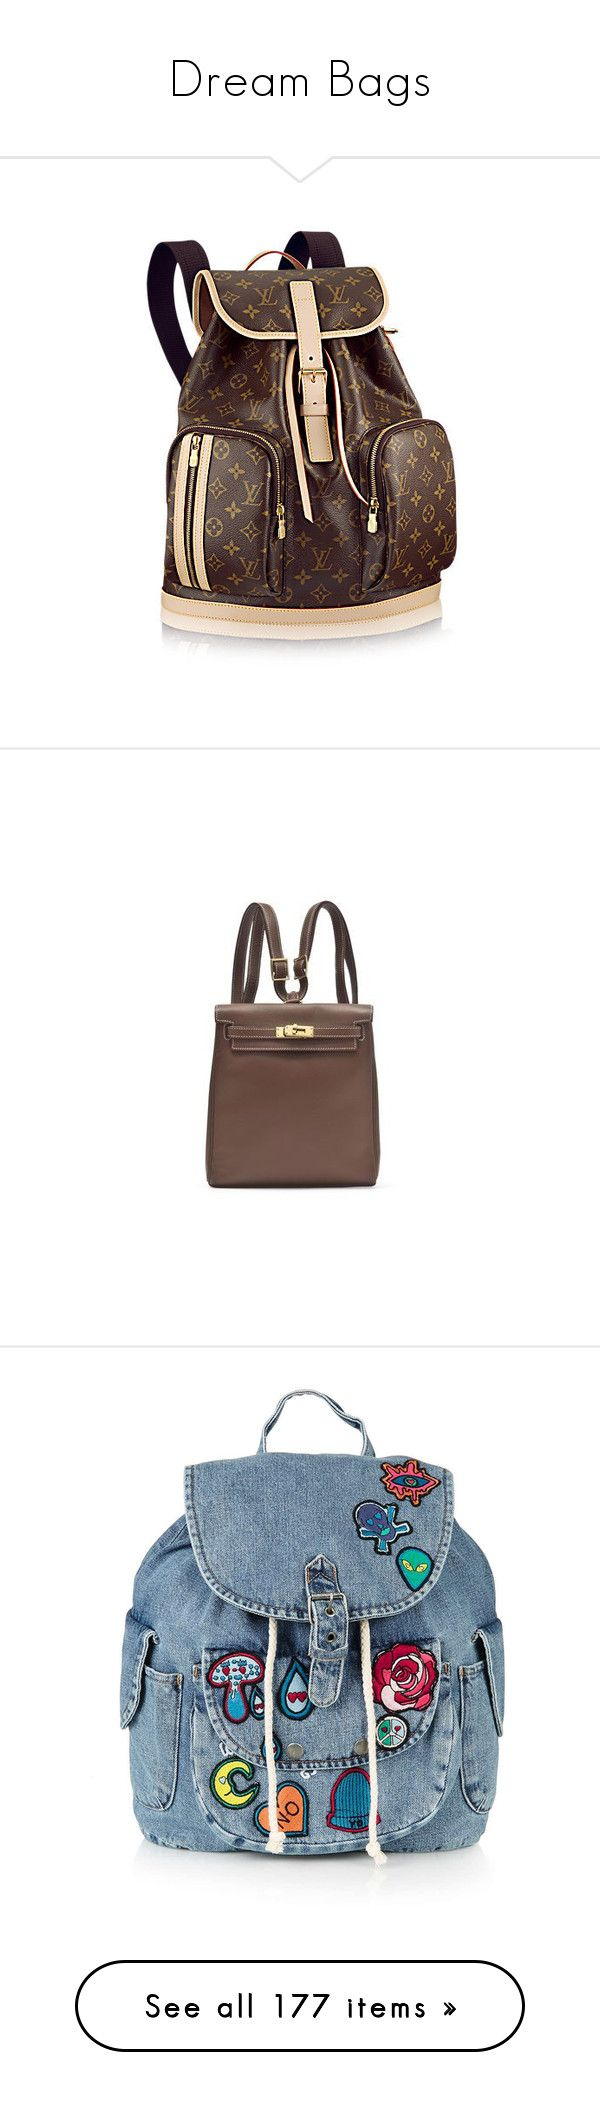 """""""Dream Bags"""" by gracebeckett ❤ liked on Polyvore featuring bags, backpacks, backpack, brown bag, brown canvas bag, backpack bags, canvas knapsack, daypack bag, topshop backpack and polka dot backpack"""